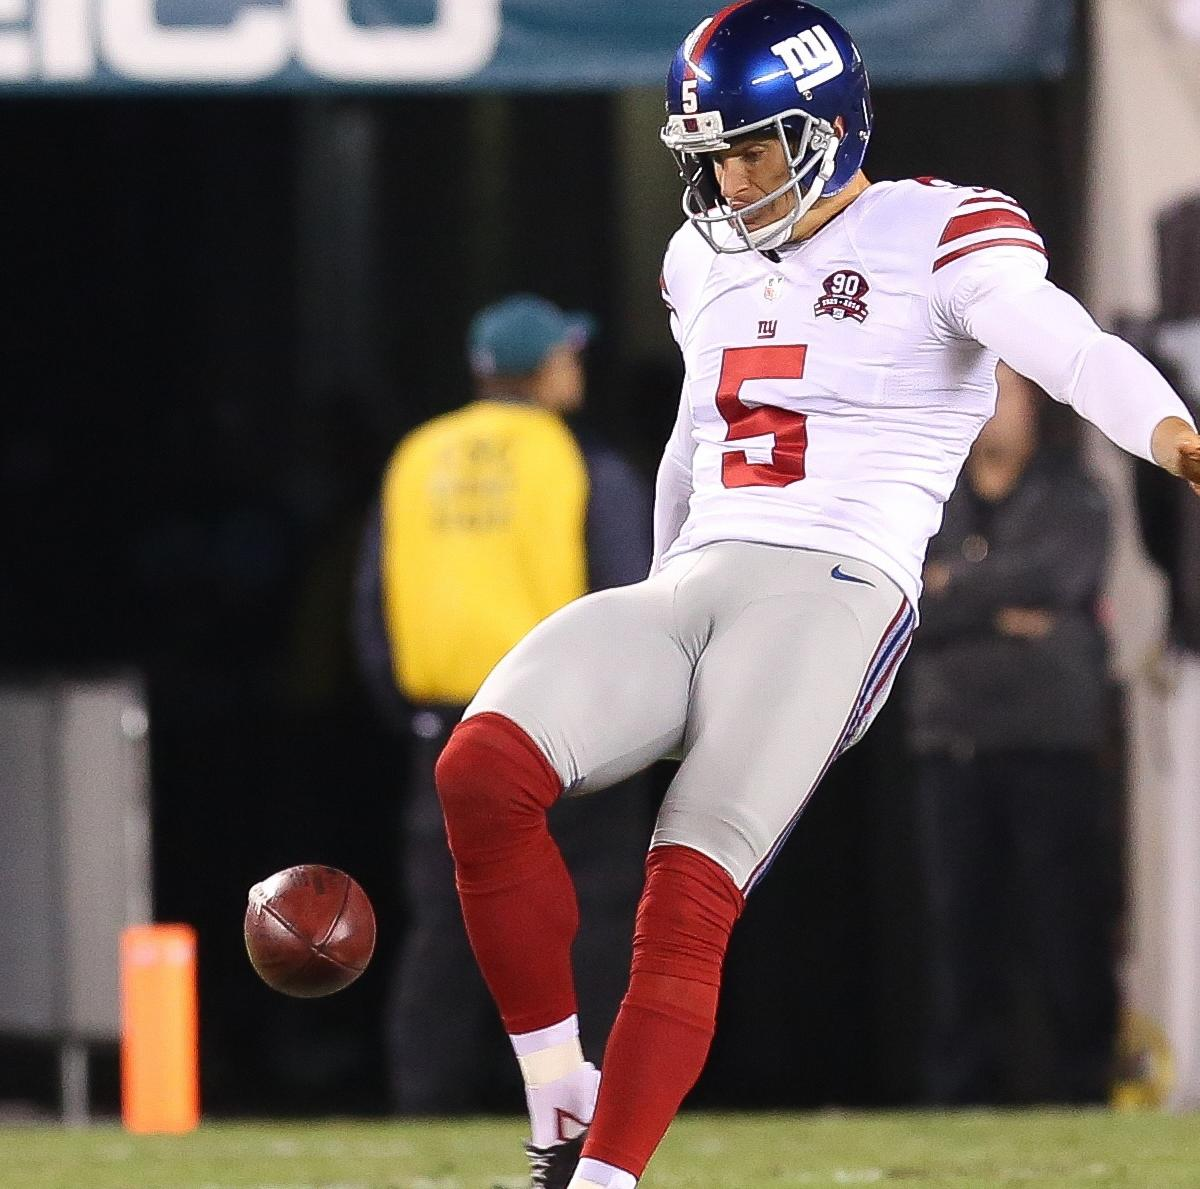 Steve Weatherford Released By Giants: Latest Details